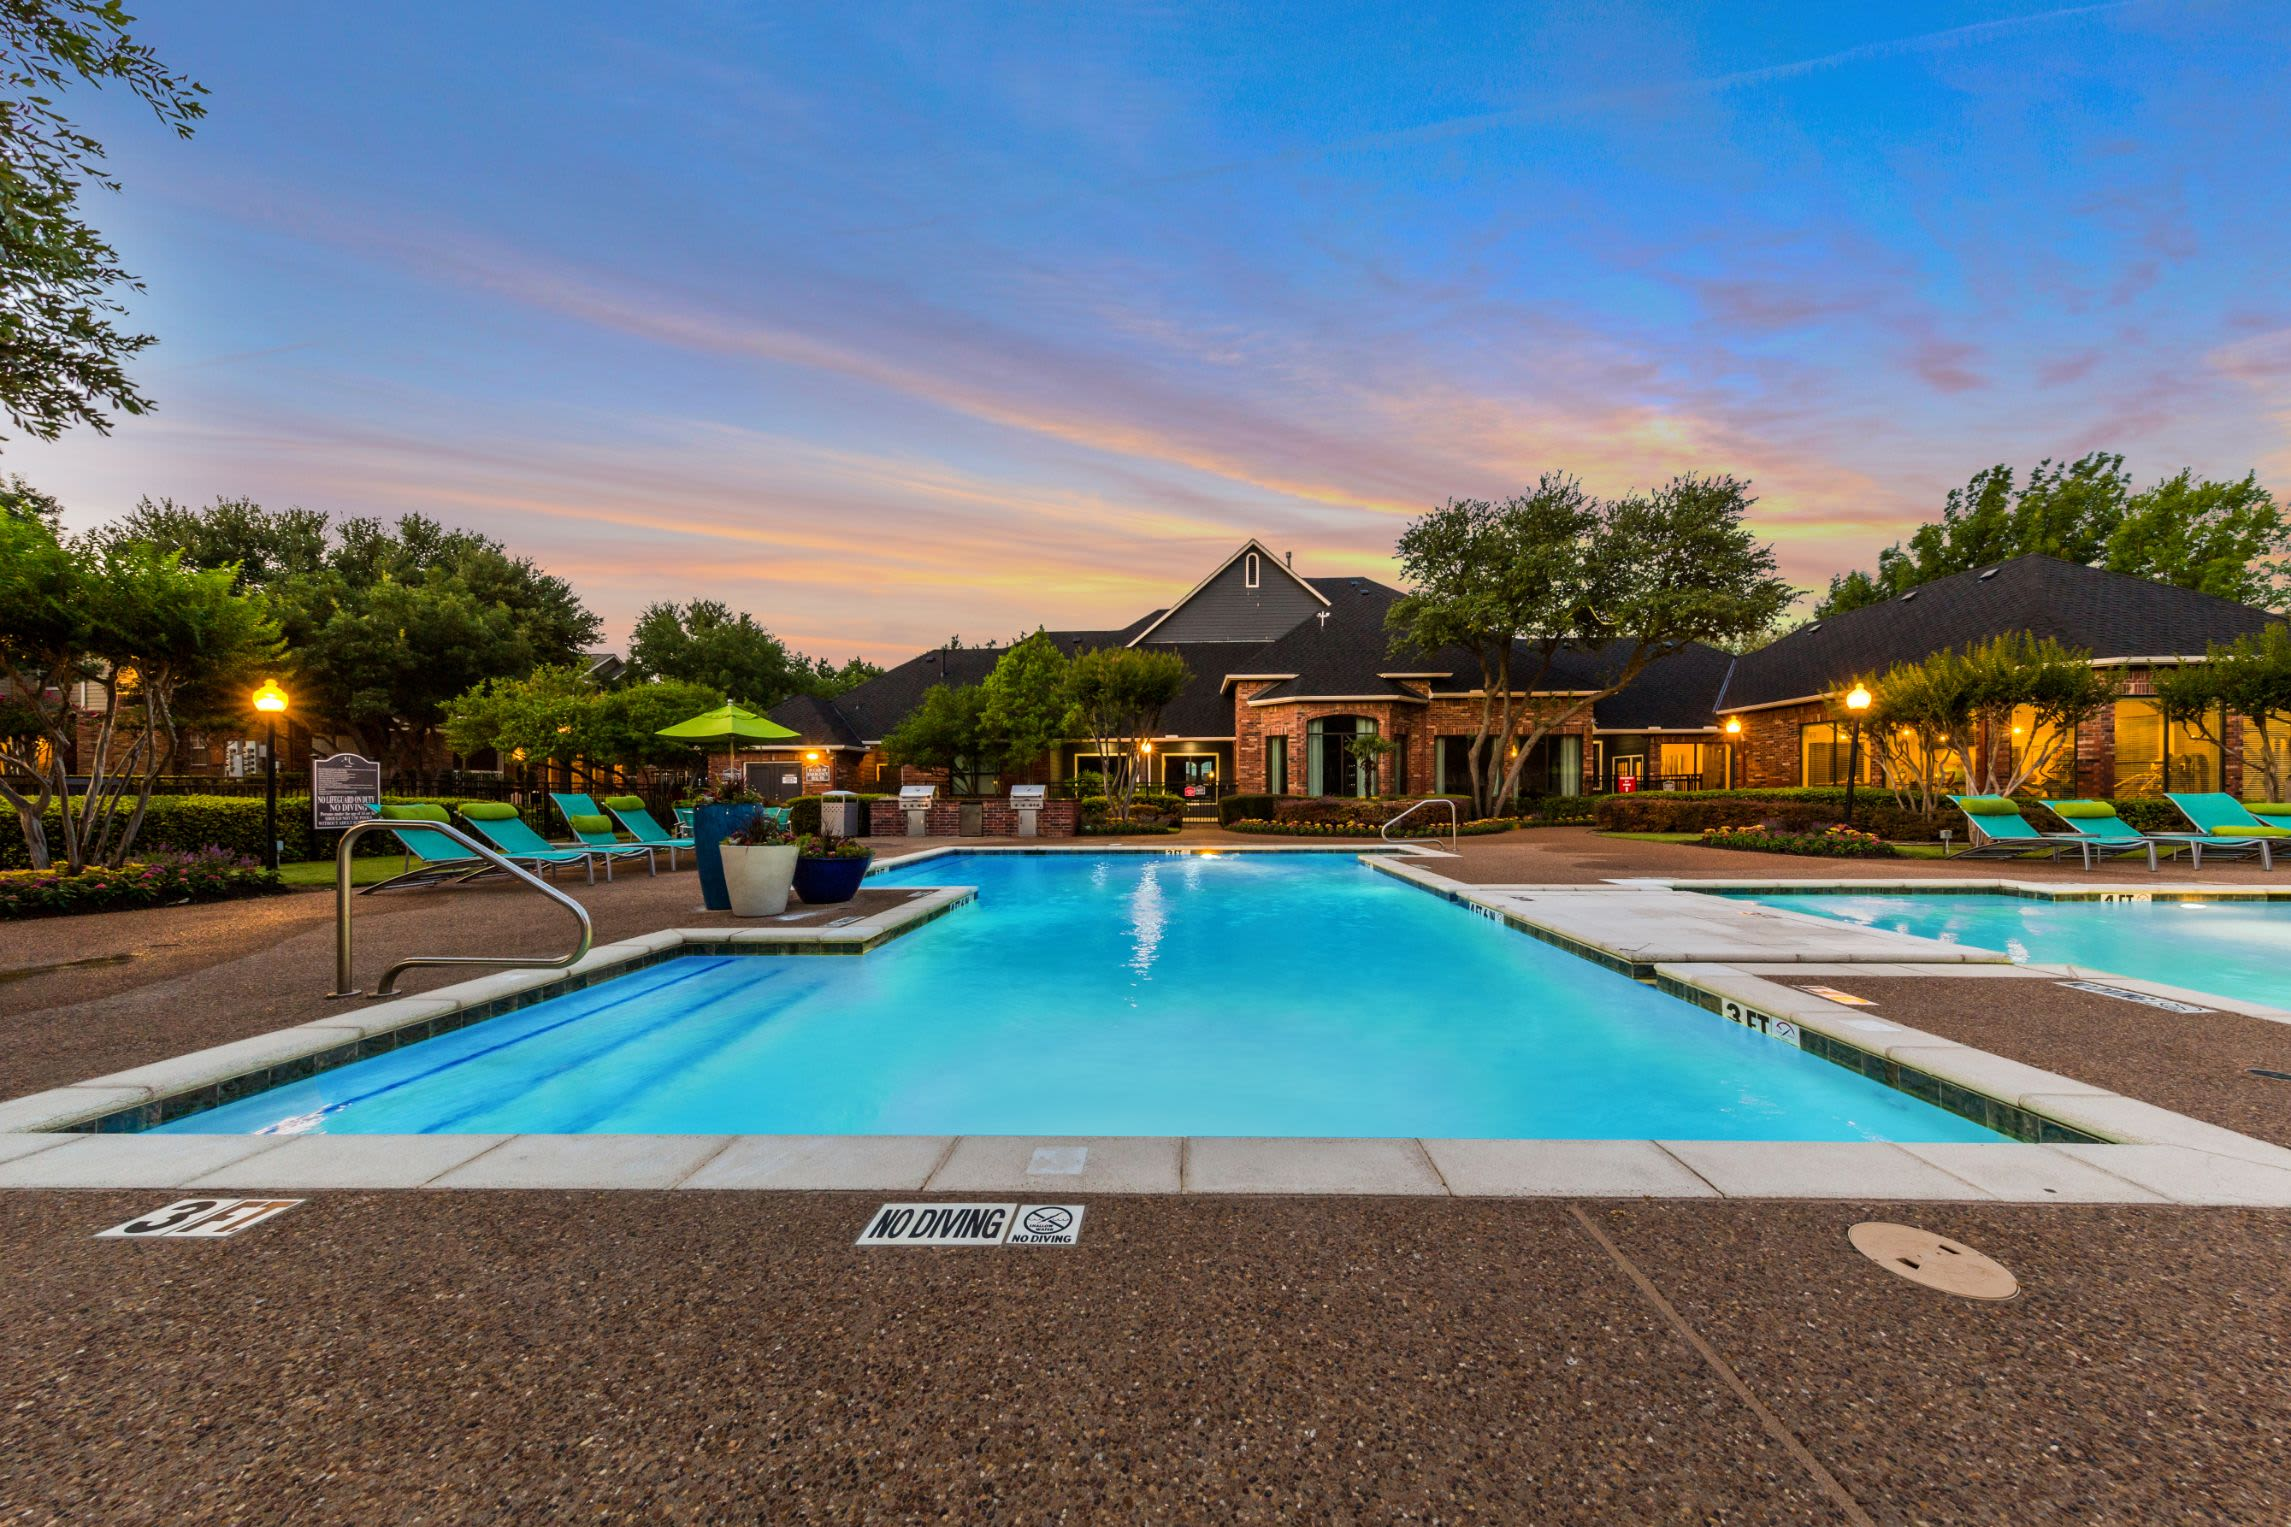 Lit pool at sunset at Marquis at Stonebriar in Frisco, Texas